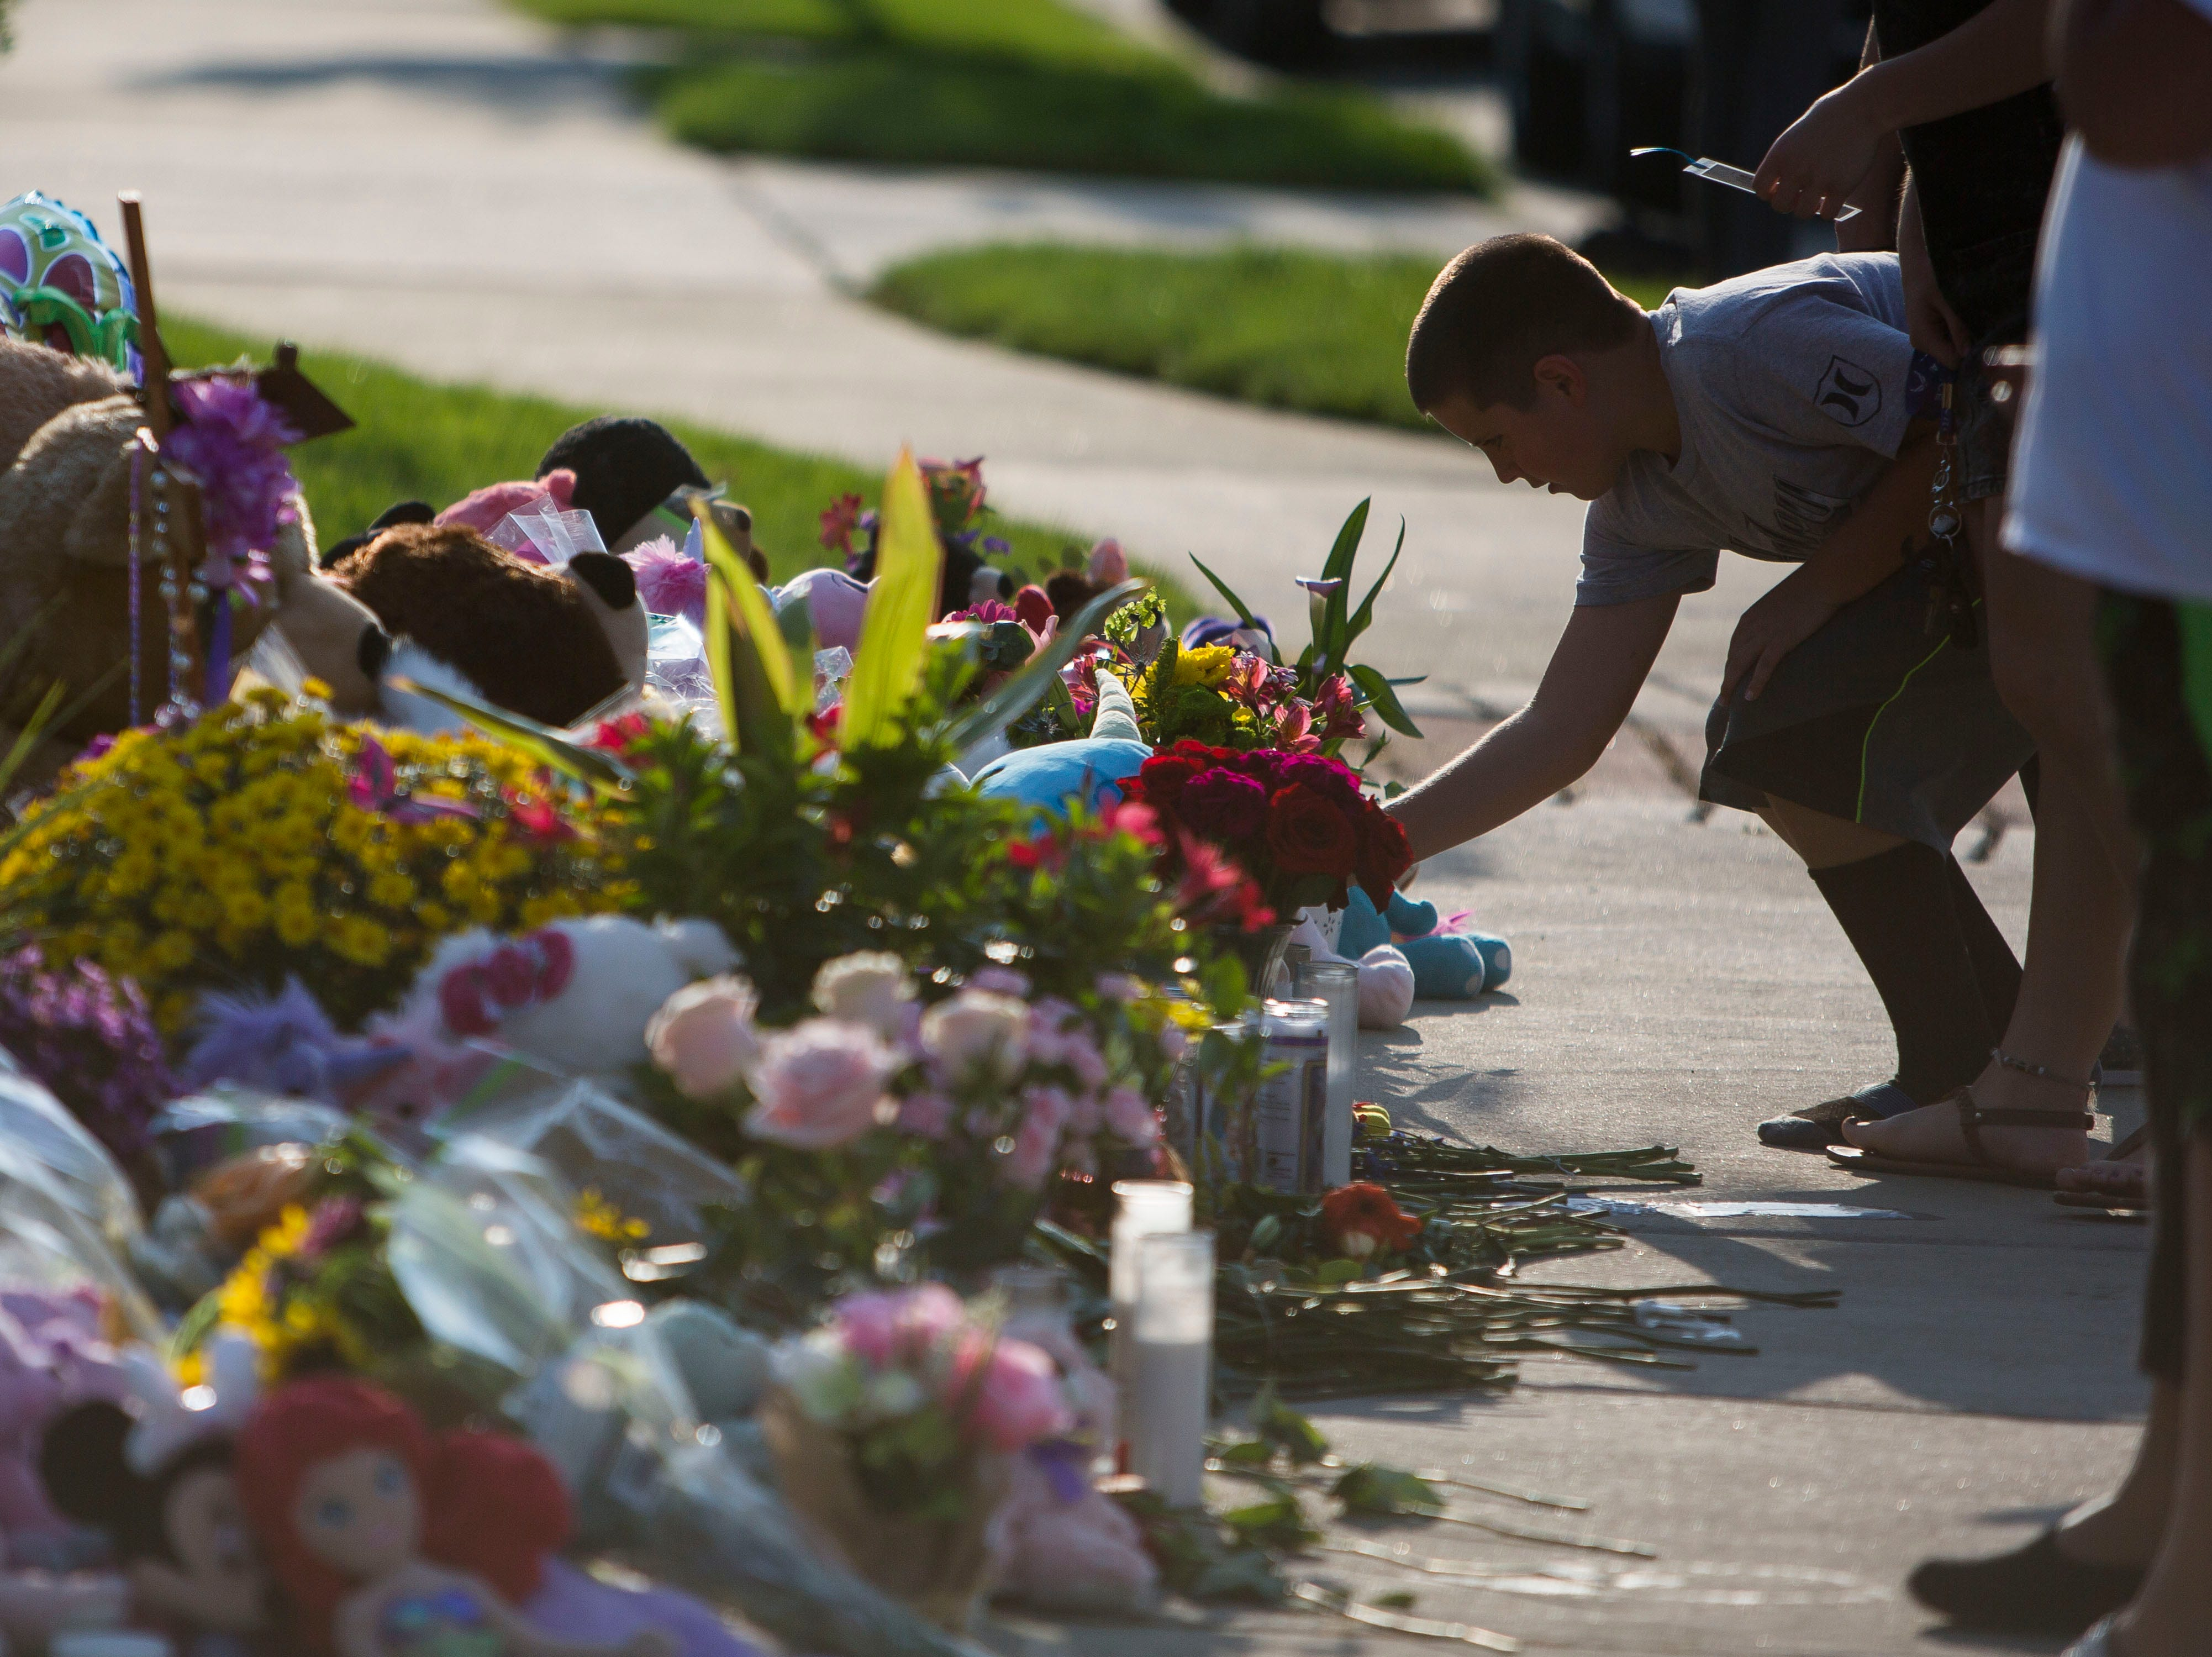 Frederick resident Brady Dwinal, 10, leans over a memorial of flowers, stuffed animals and hand-written notes for the slain Shanann Watts and her two daughters, Bella, 4, and Celeste, 3, in front of the Watts' family home on Friday, Aug. 17, 2018, in Frederick, Colo.